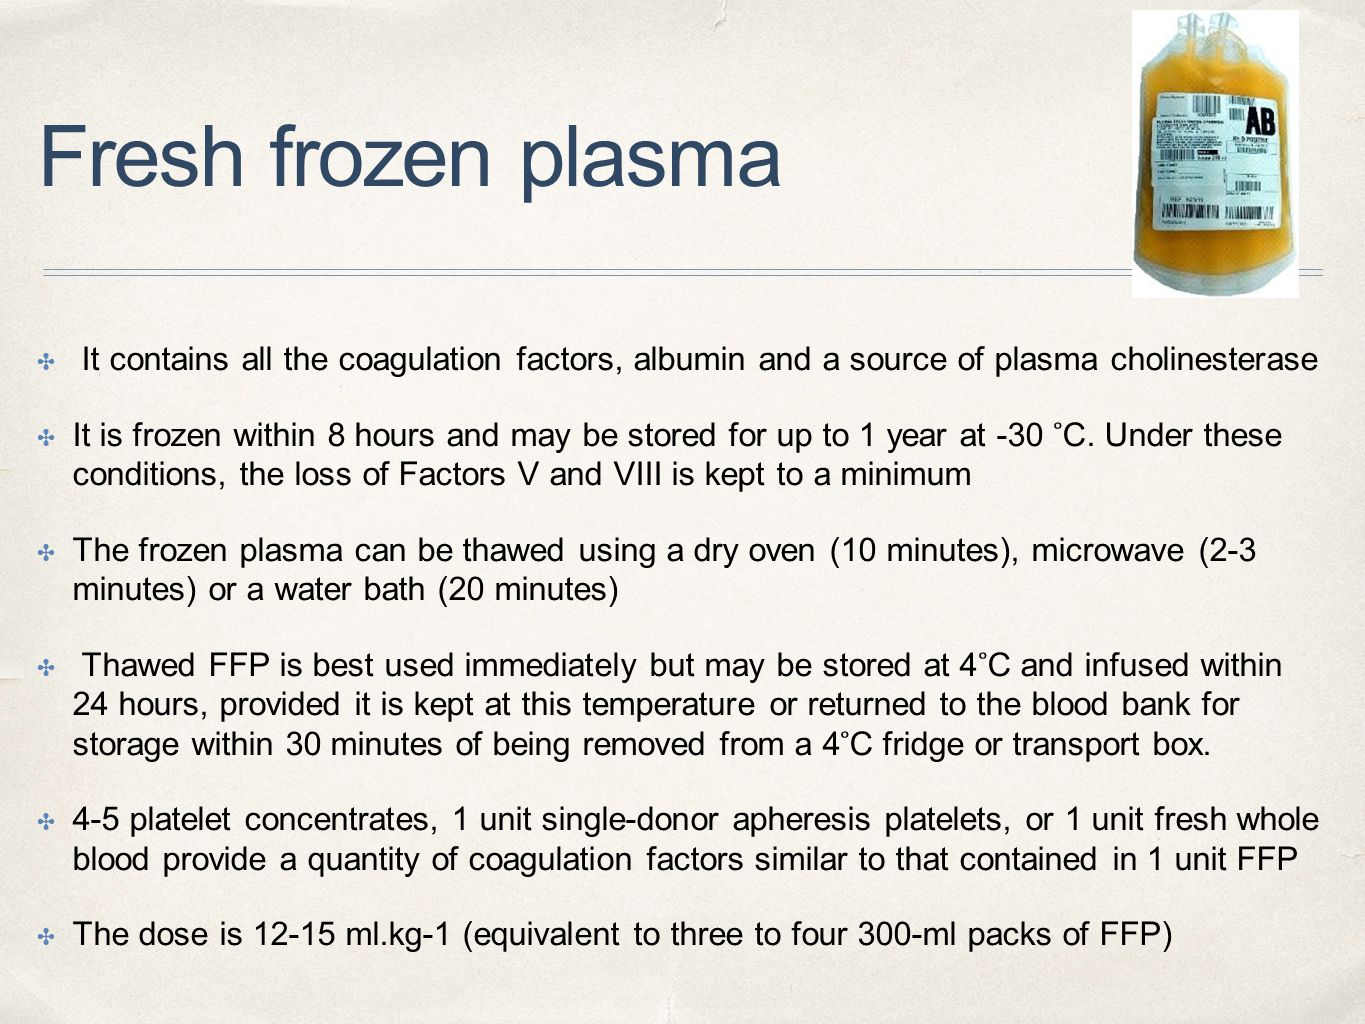 Fresh frozen plasma It contains all the coagulation factors, albumin and a source of plasma cholinesterase.